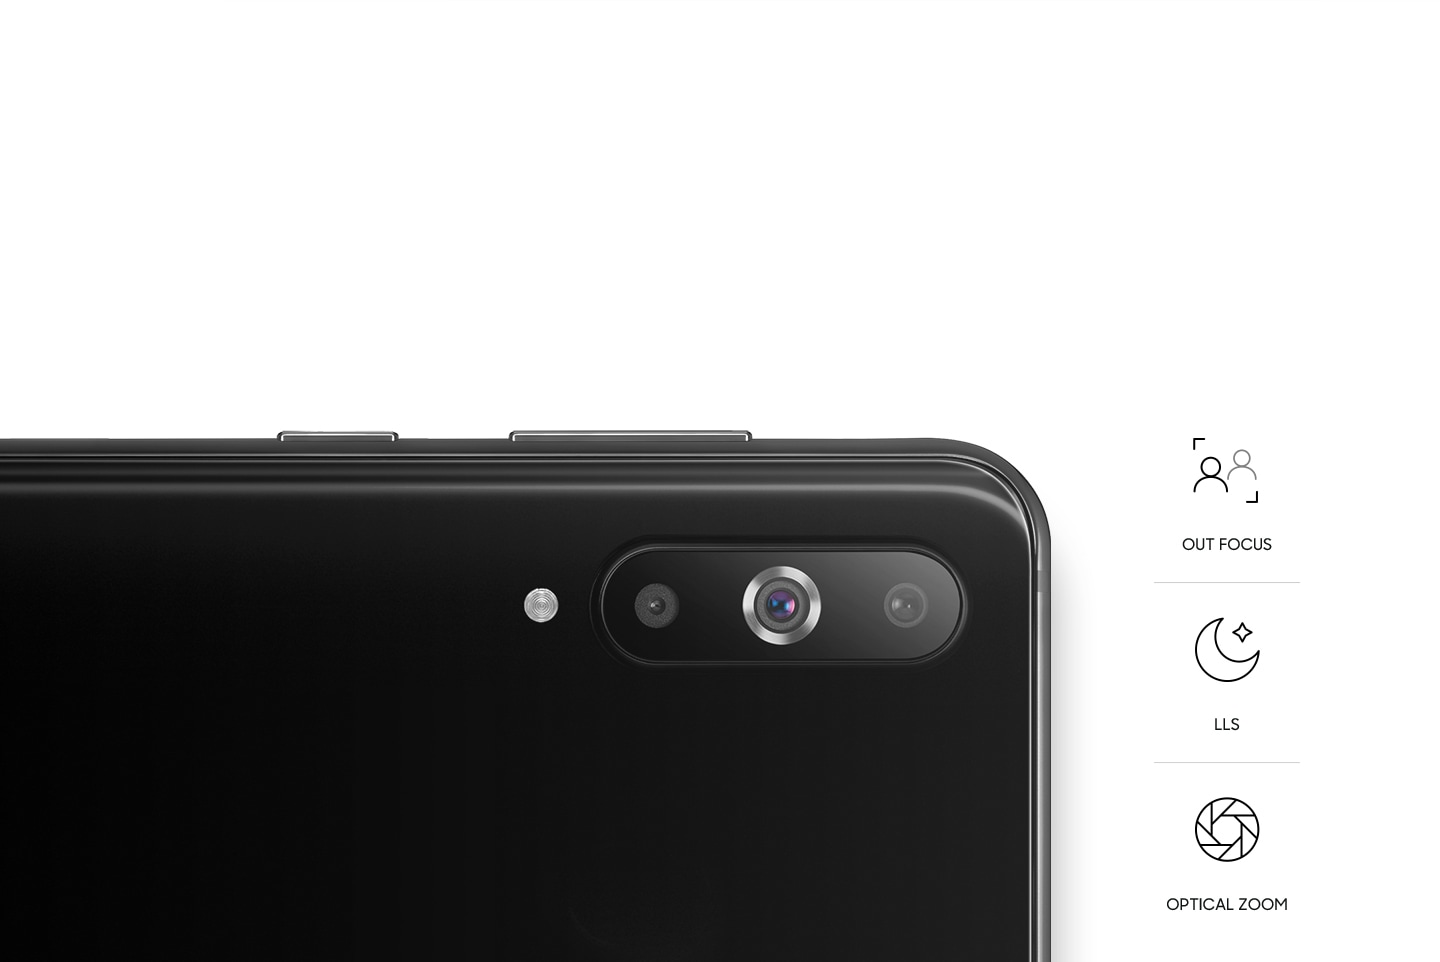 Rear view of smartphone with a triple camera with Outo Focus, LLS, and Optical Zoom symbols.